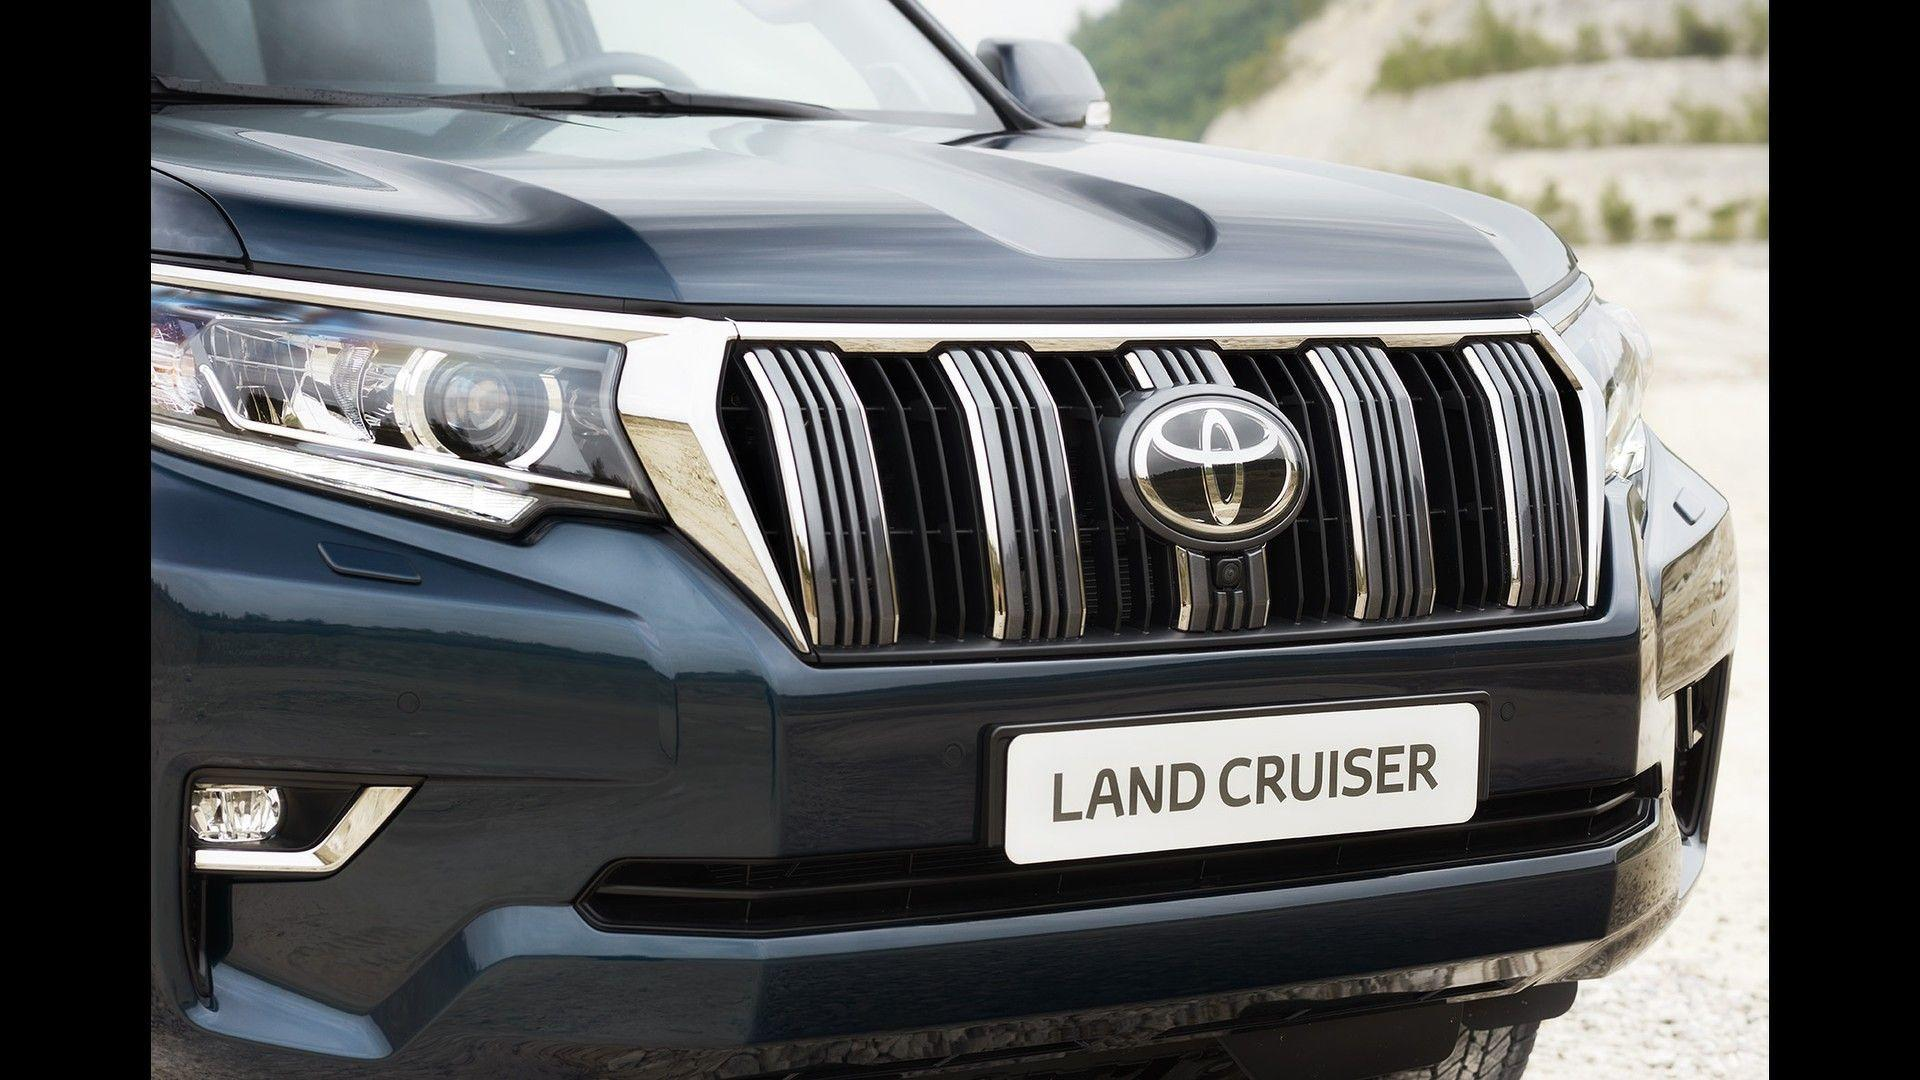 2018-toyota-land-cruiser-euro-official-images (8)